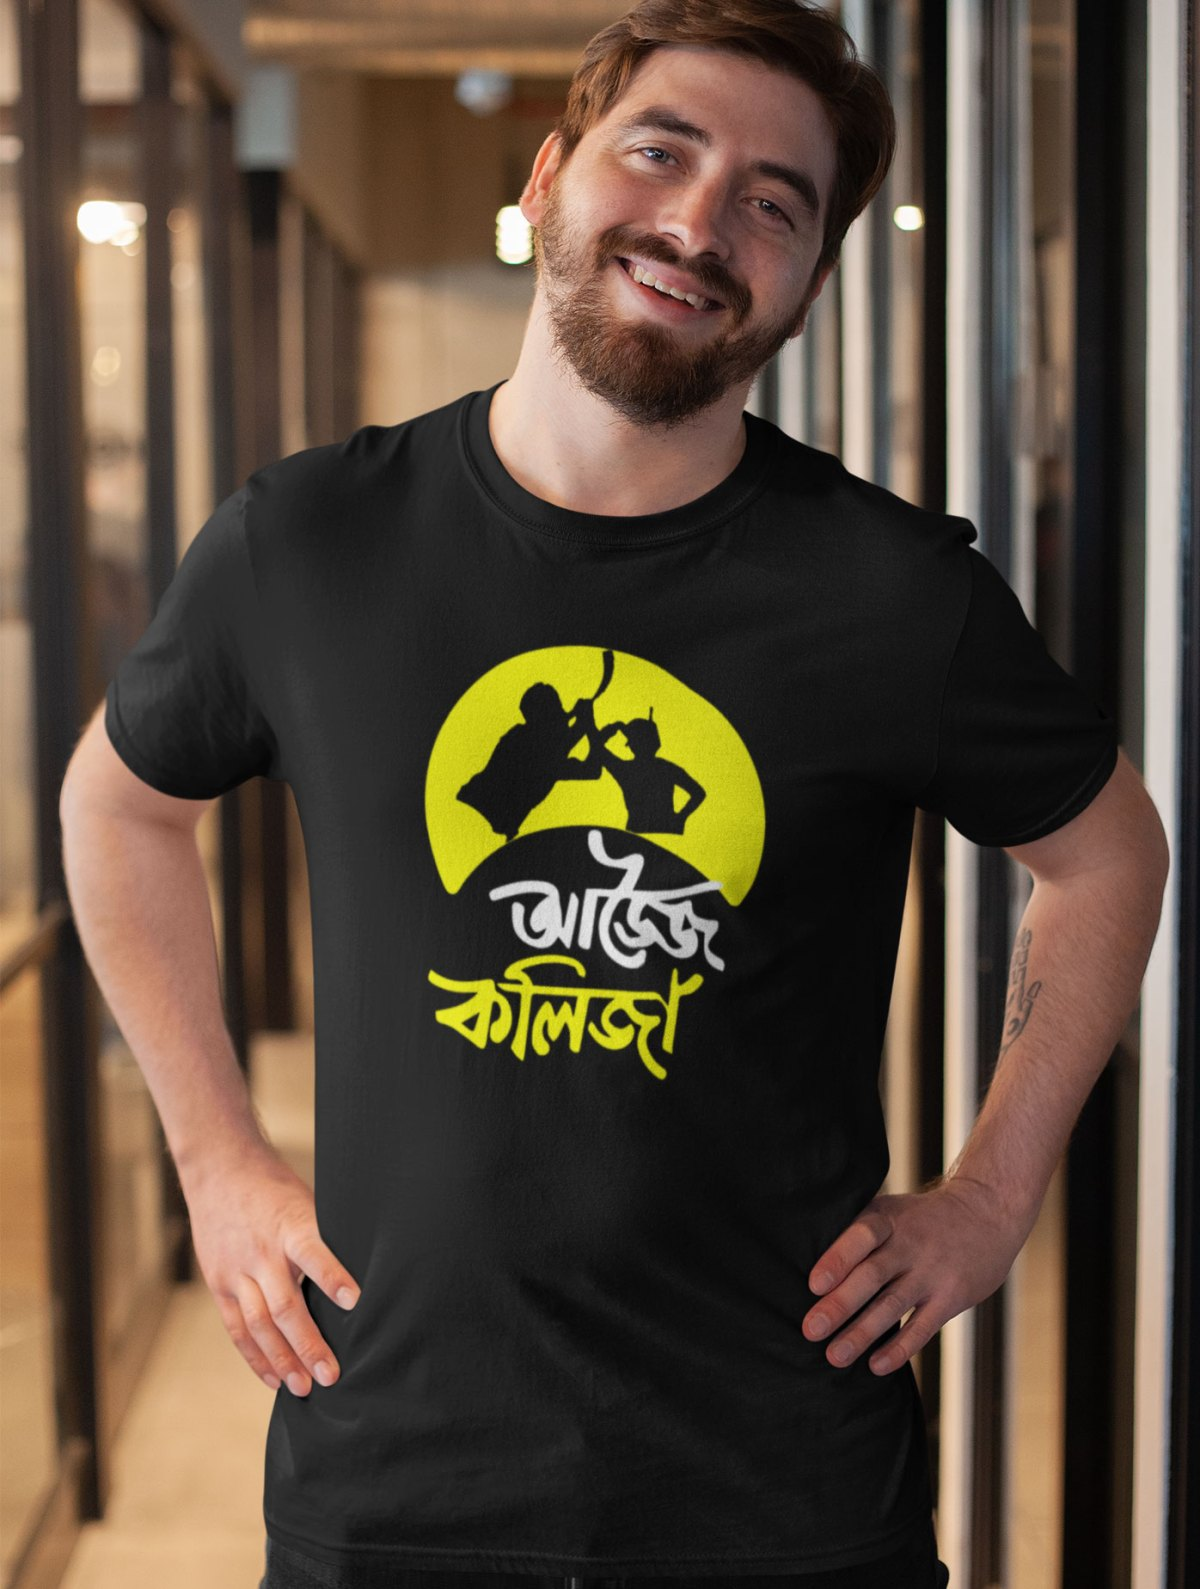 Aajoi Kolija black assamese t shirt